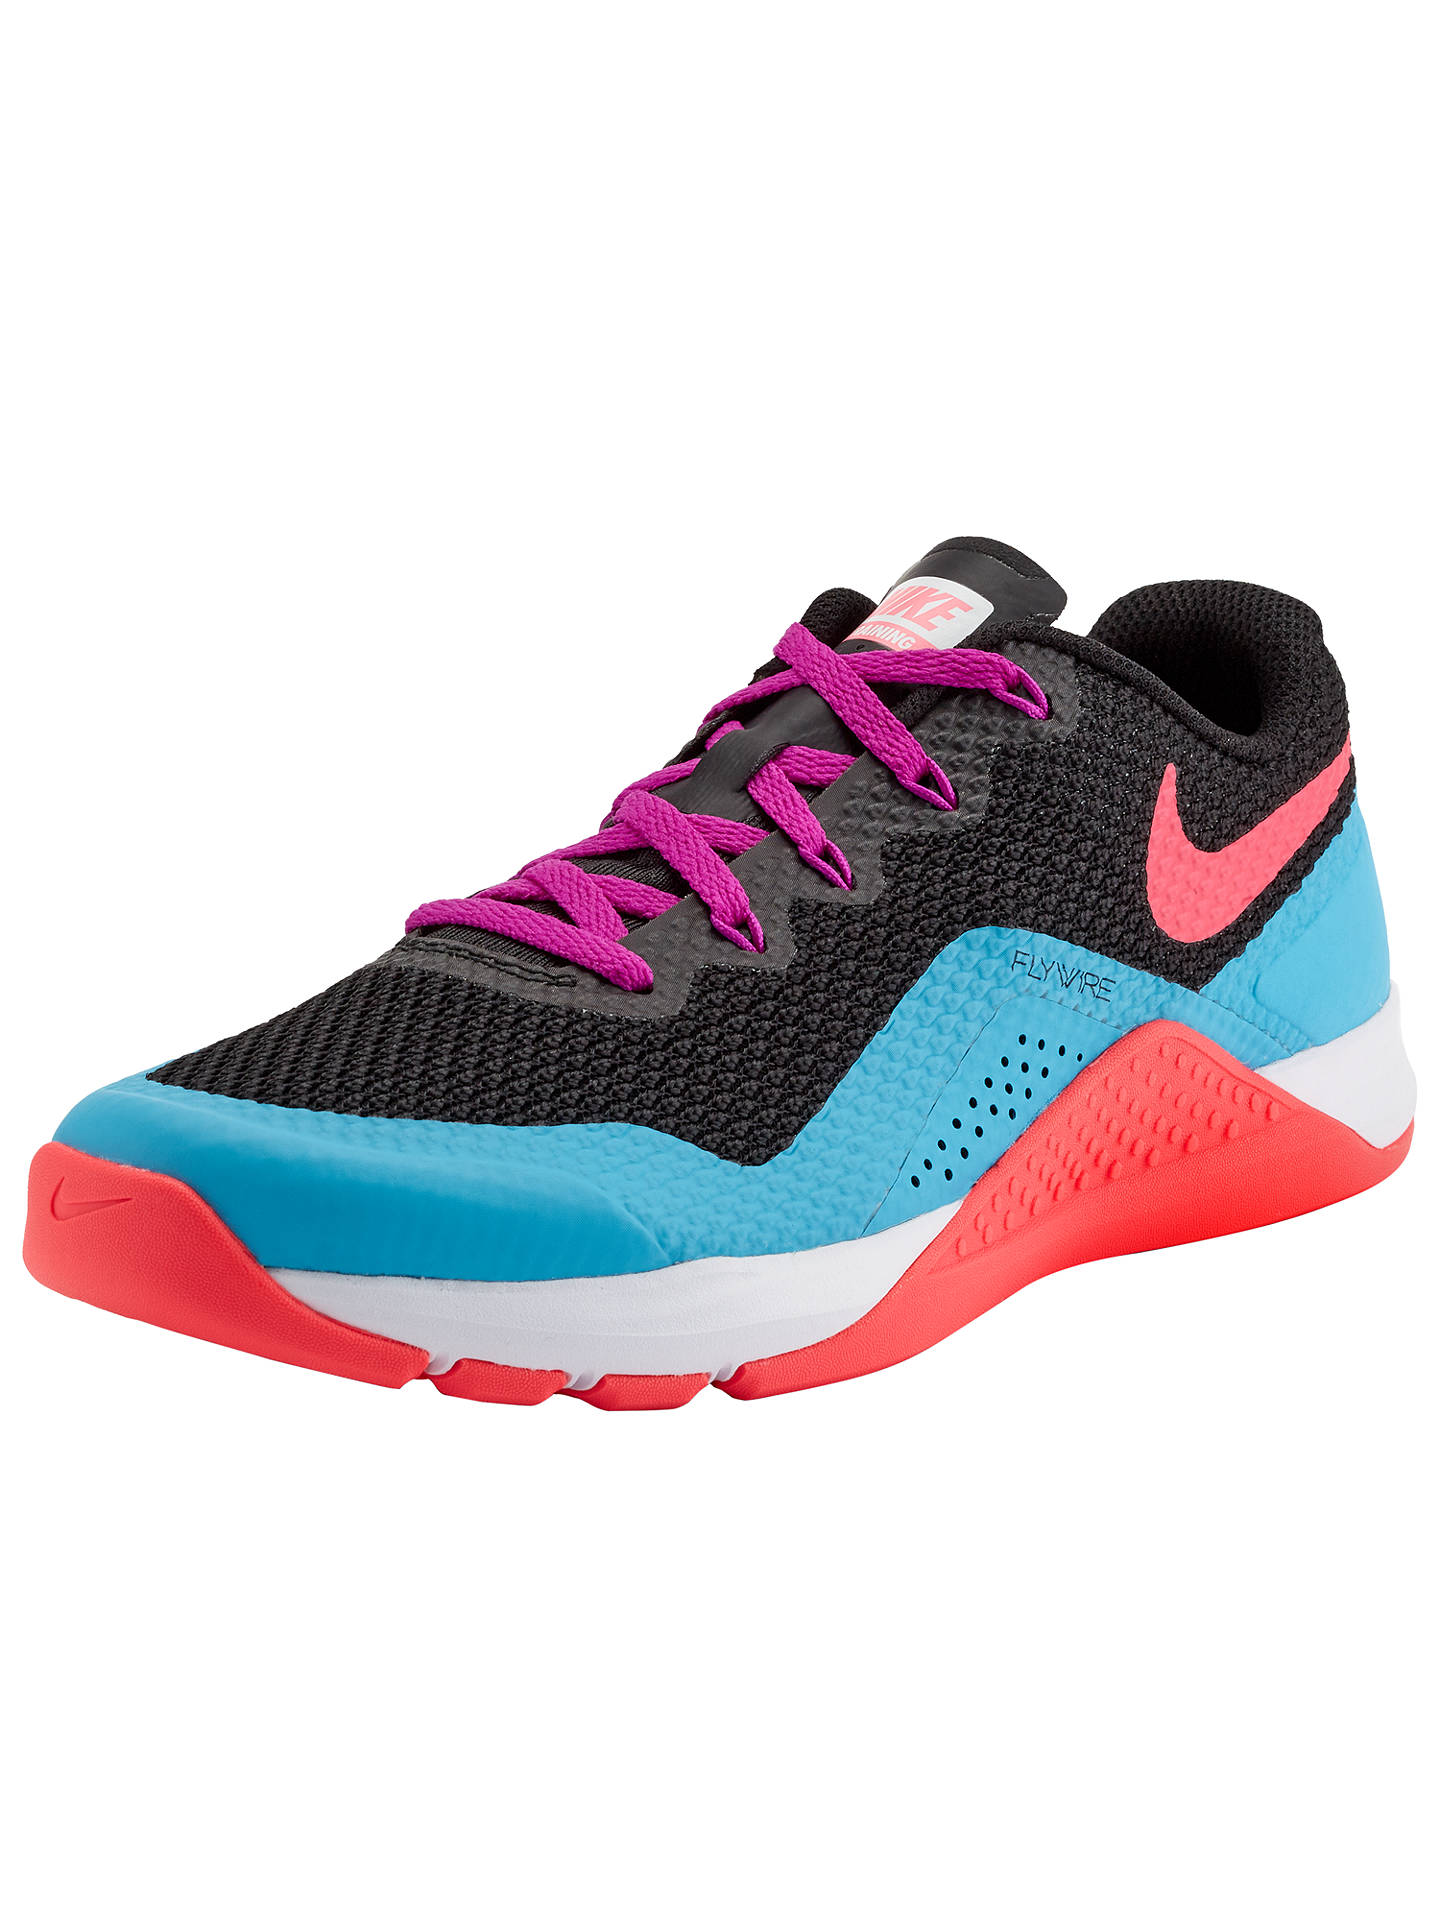 official photos a93ee 92c90 Buy Nike Metcon Repper DSX Women s Cross Trainers, Black Pink, 4 Online at  ...